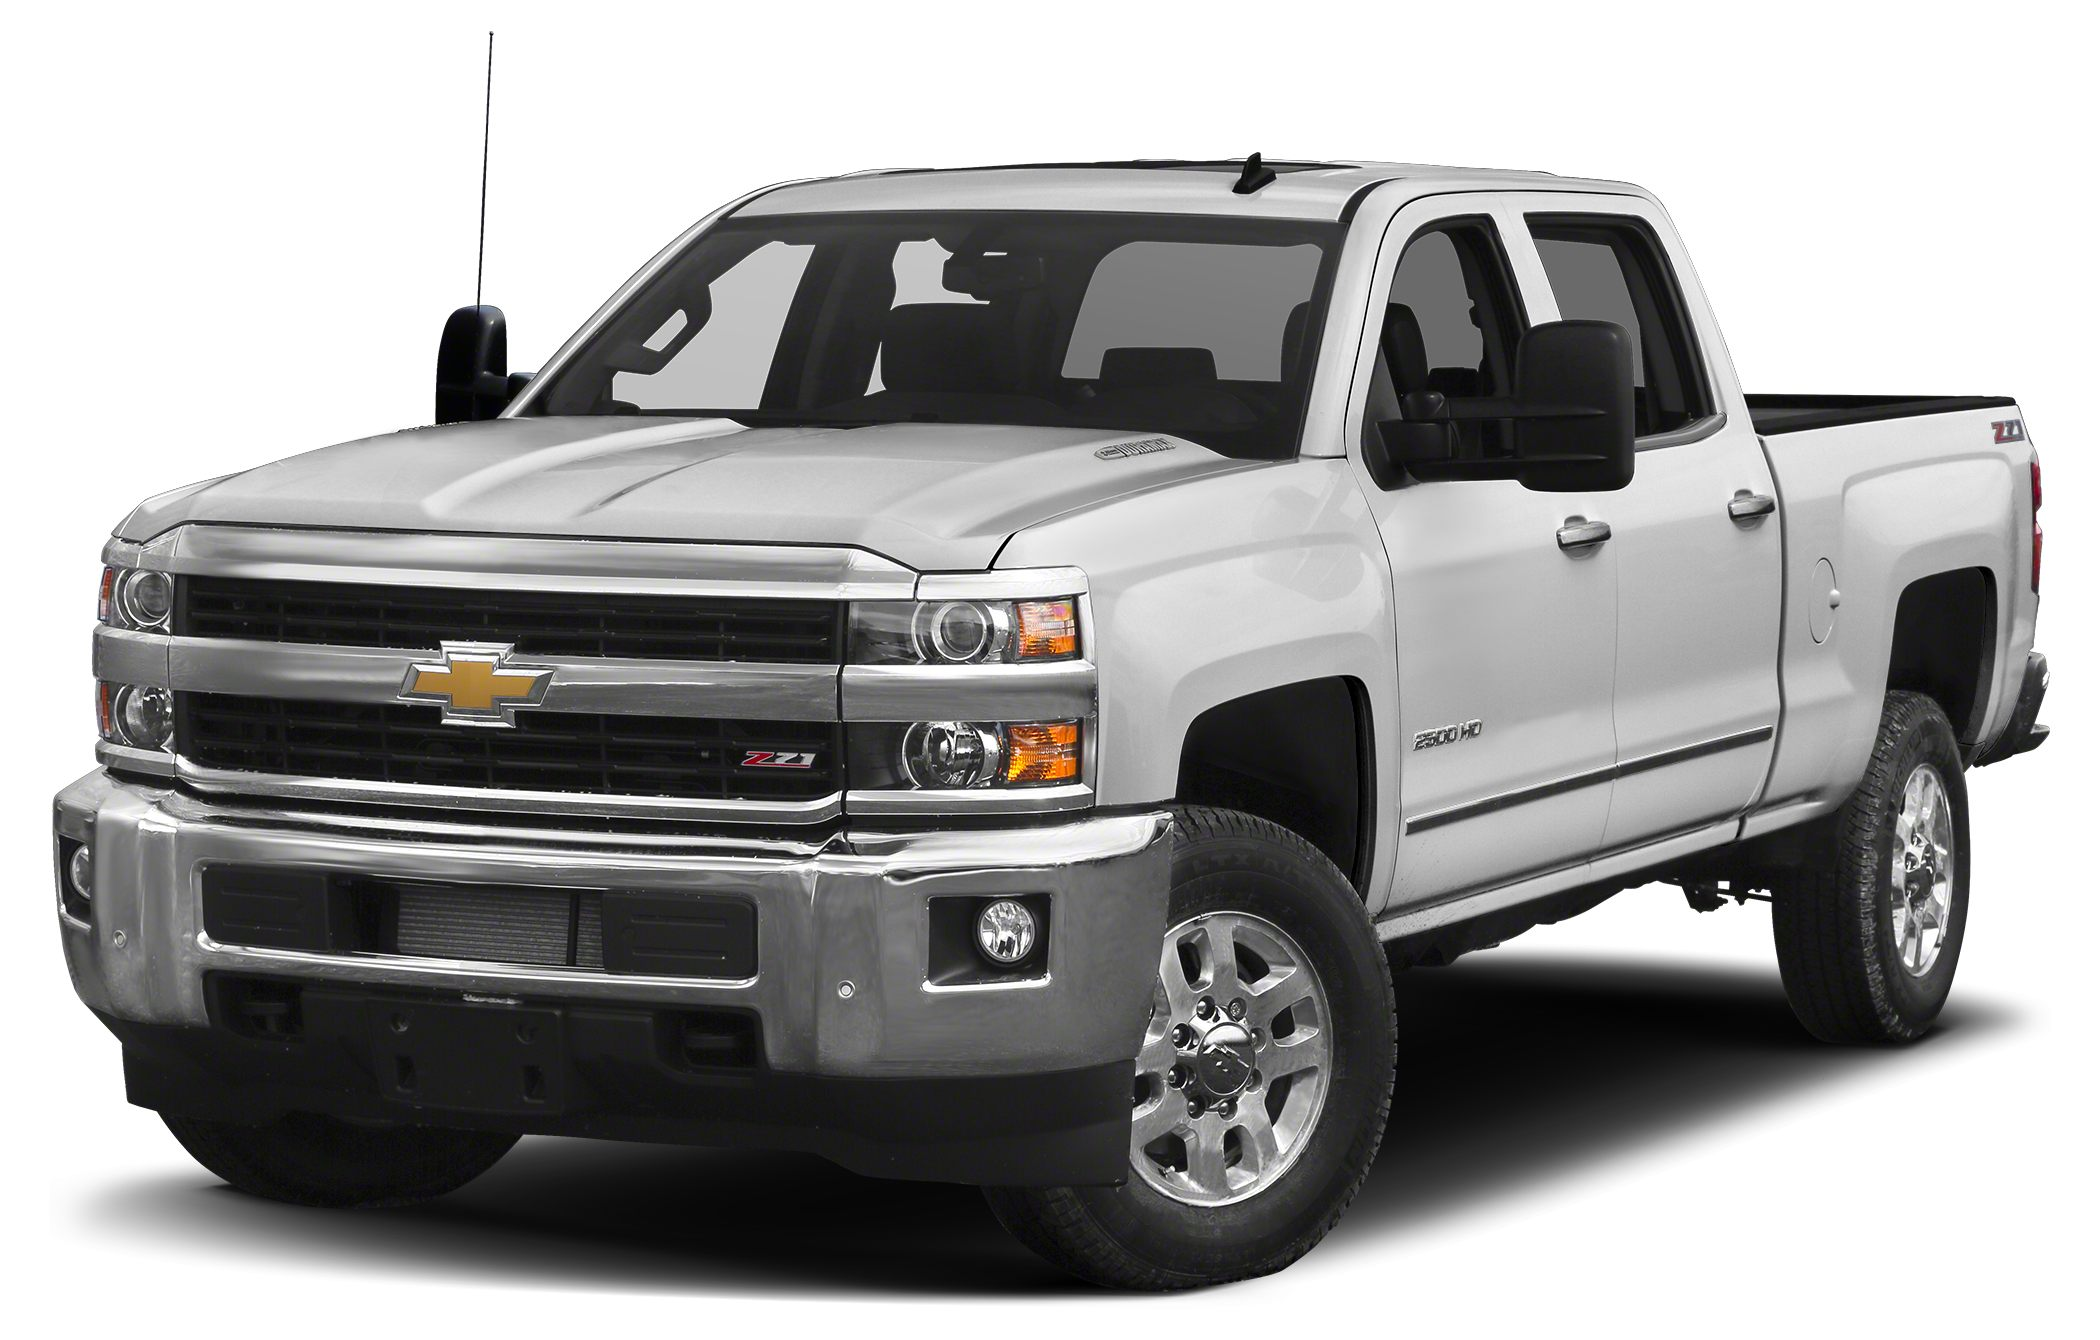 2016 Chevrolet Silverado 2500HD LTZ 18 Black SOTA Wheels with 35 BF Goodrich All Terrains Levelin